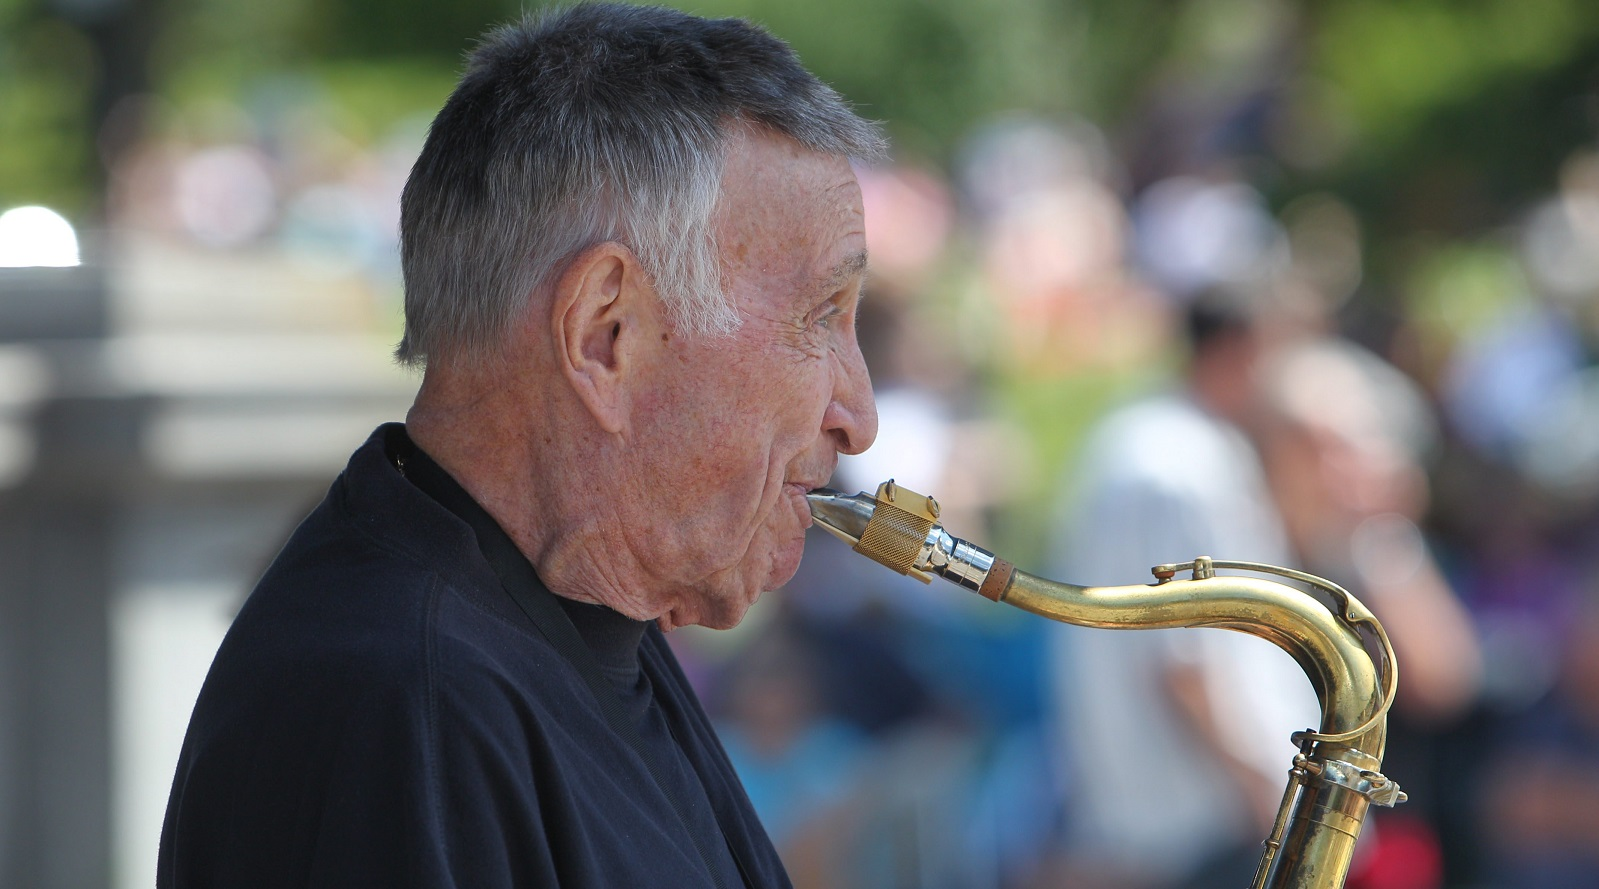 Don Rice played the Jazz at the Albright-Knox jazz series for the 28th time. (Sharon Cantillon/Buffalo News file photo)